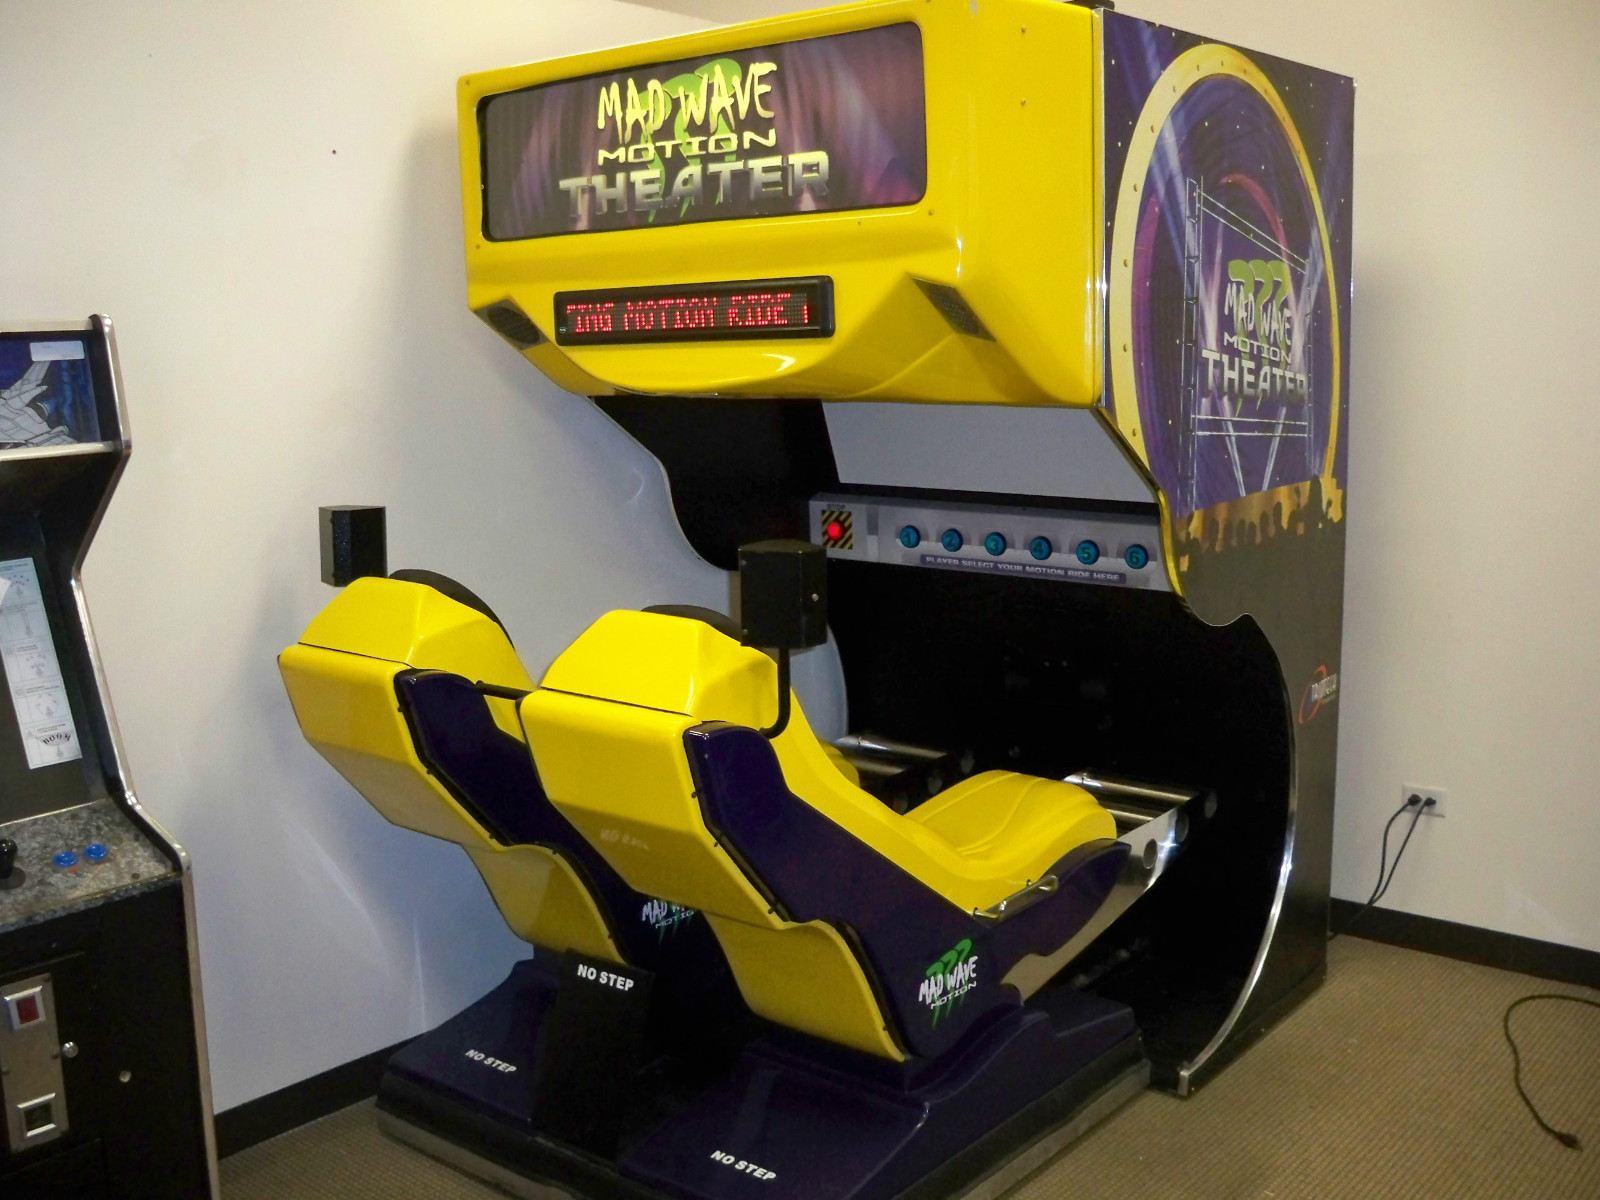 Madwave Motion Arcade Game Manual Arcade, Jukeboxes & Pinball